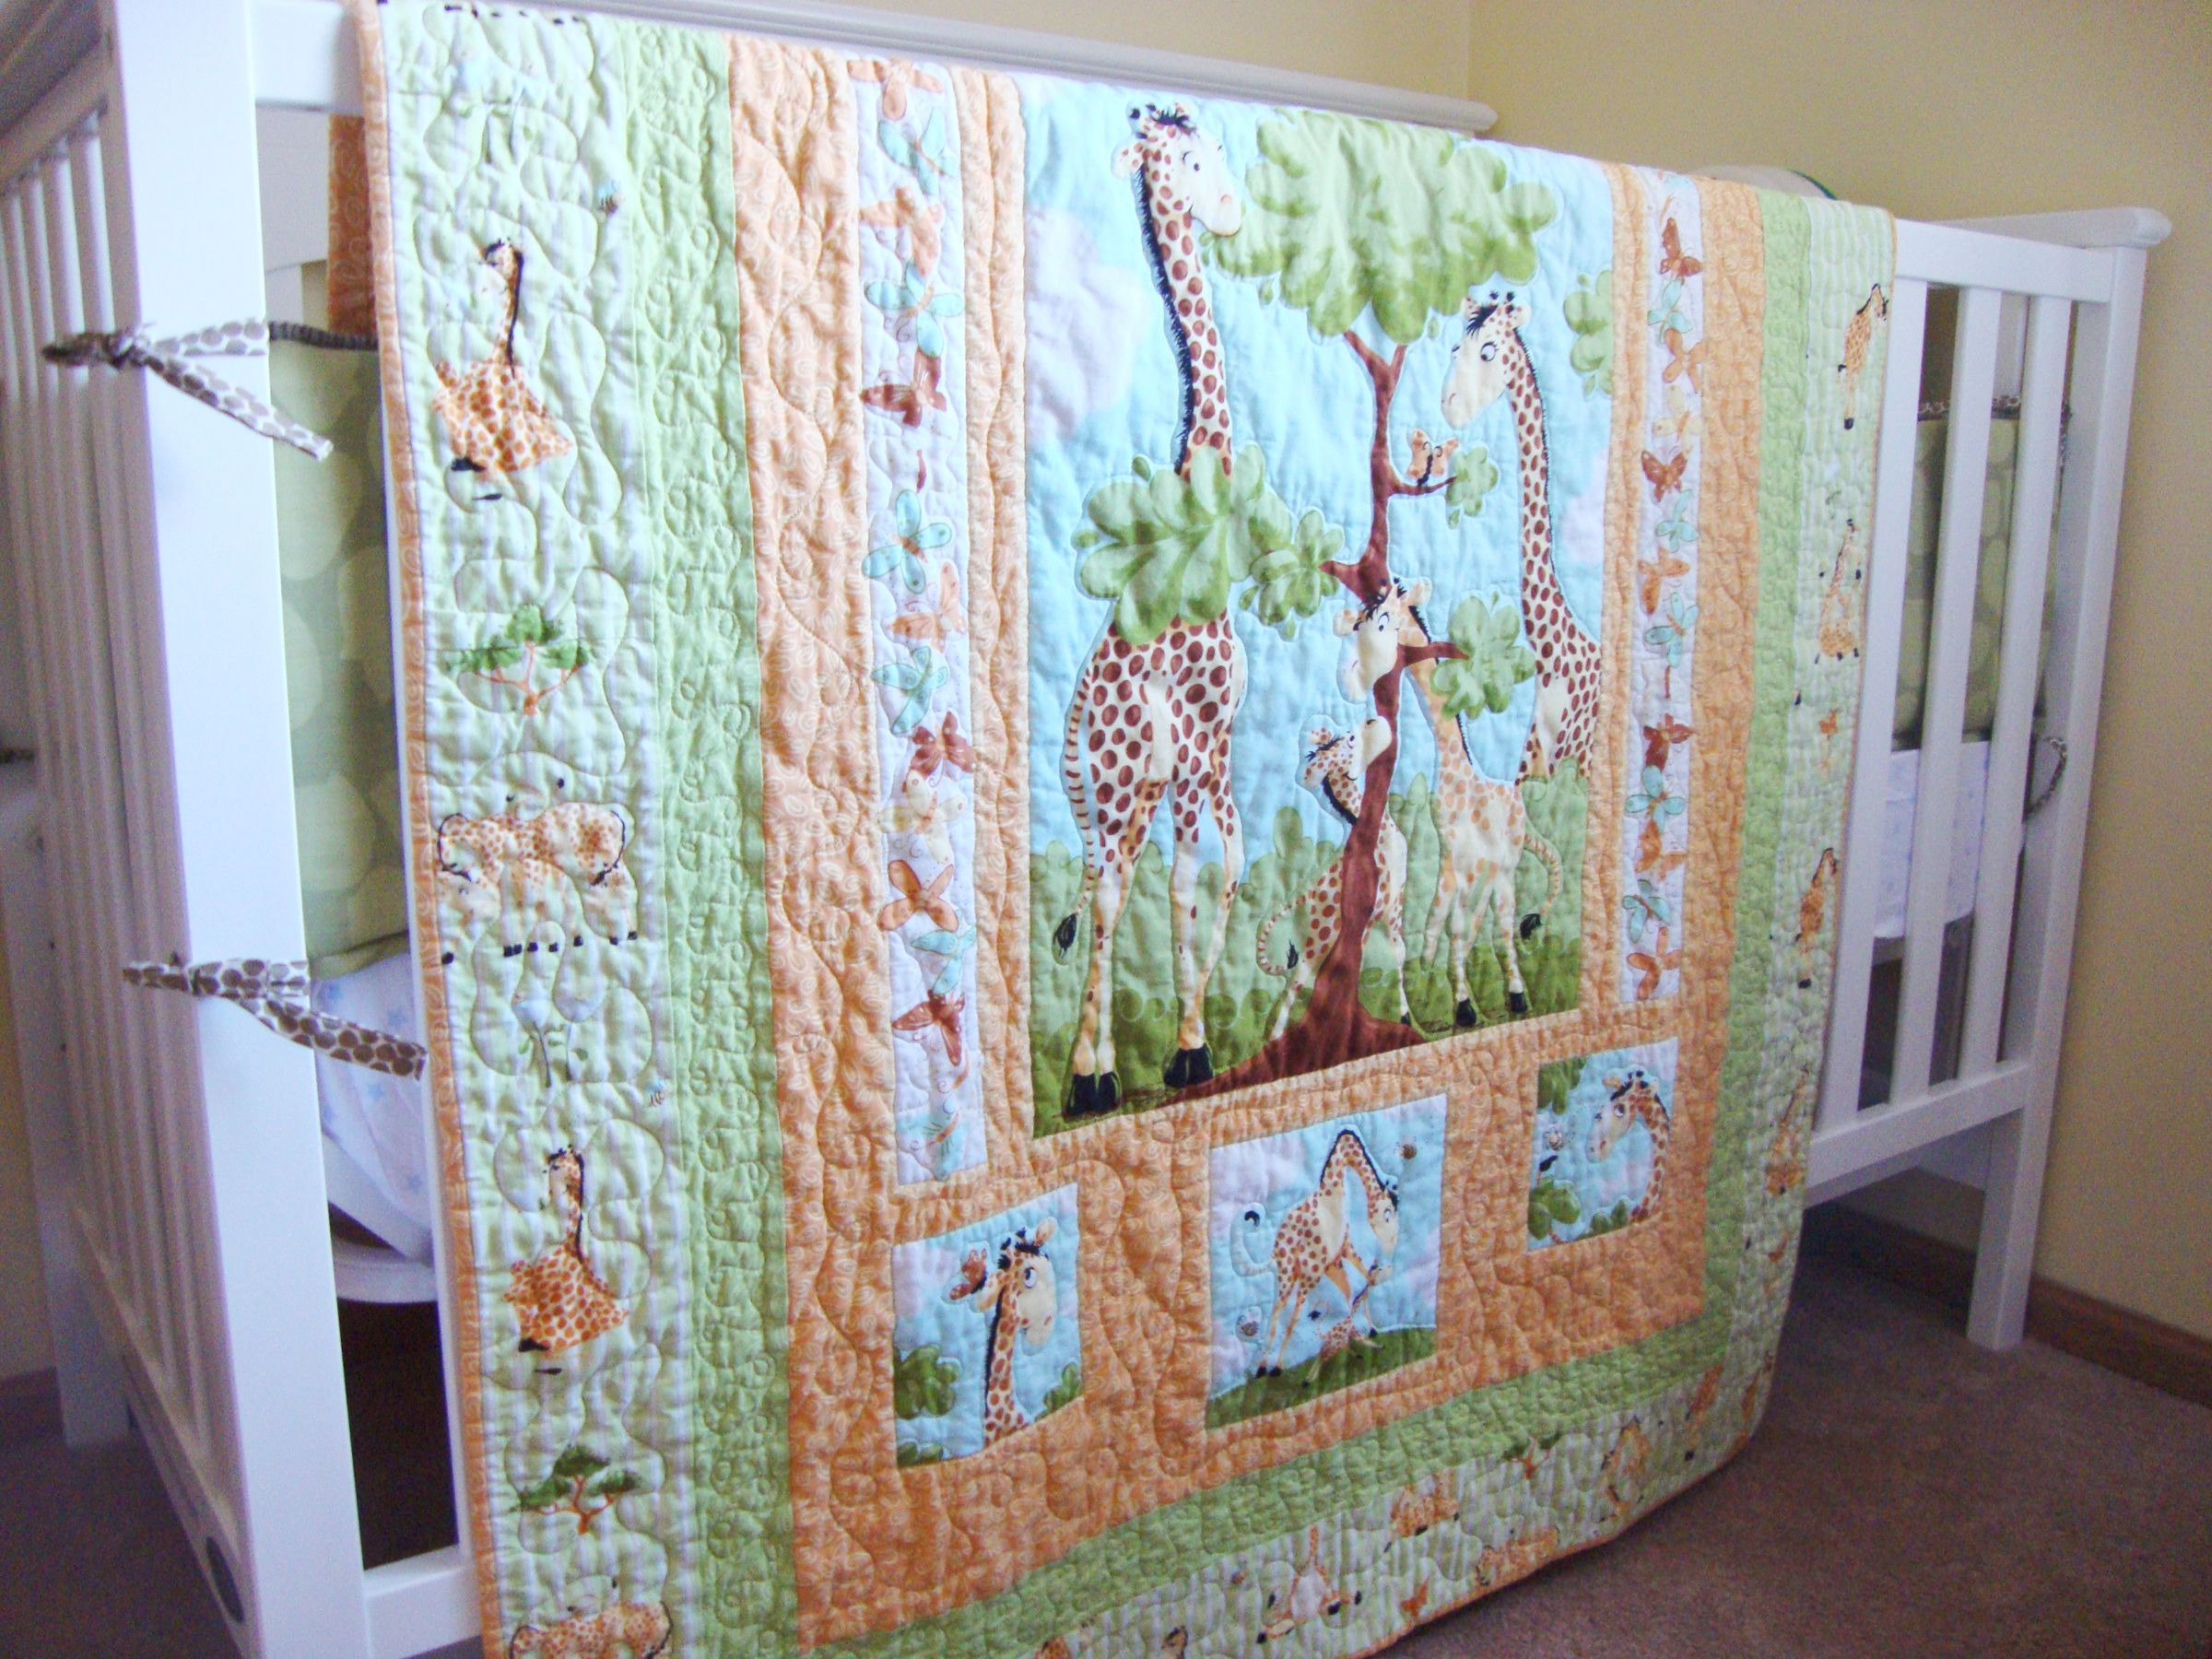 Baby quilt, quilt panel, giraffe - www.quiltaddictsanonymous.com ... : quilting with panels - Adamdwight.com